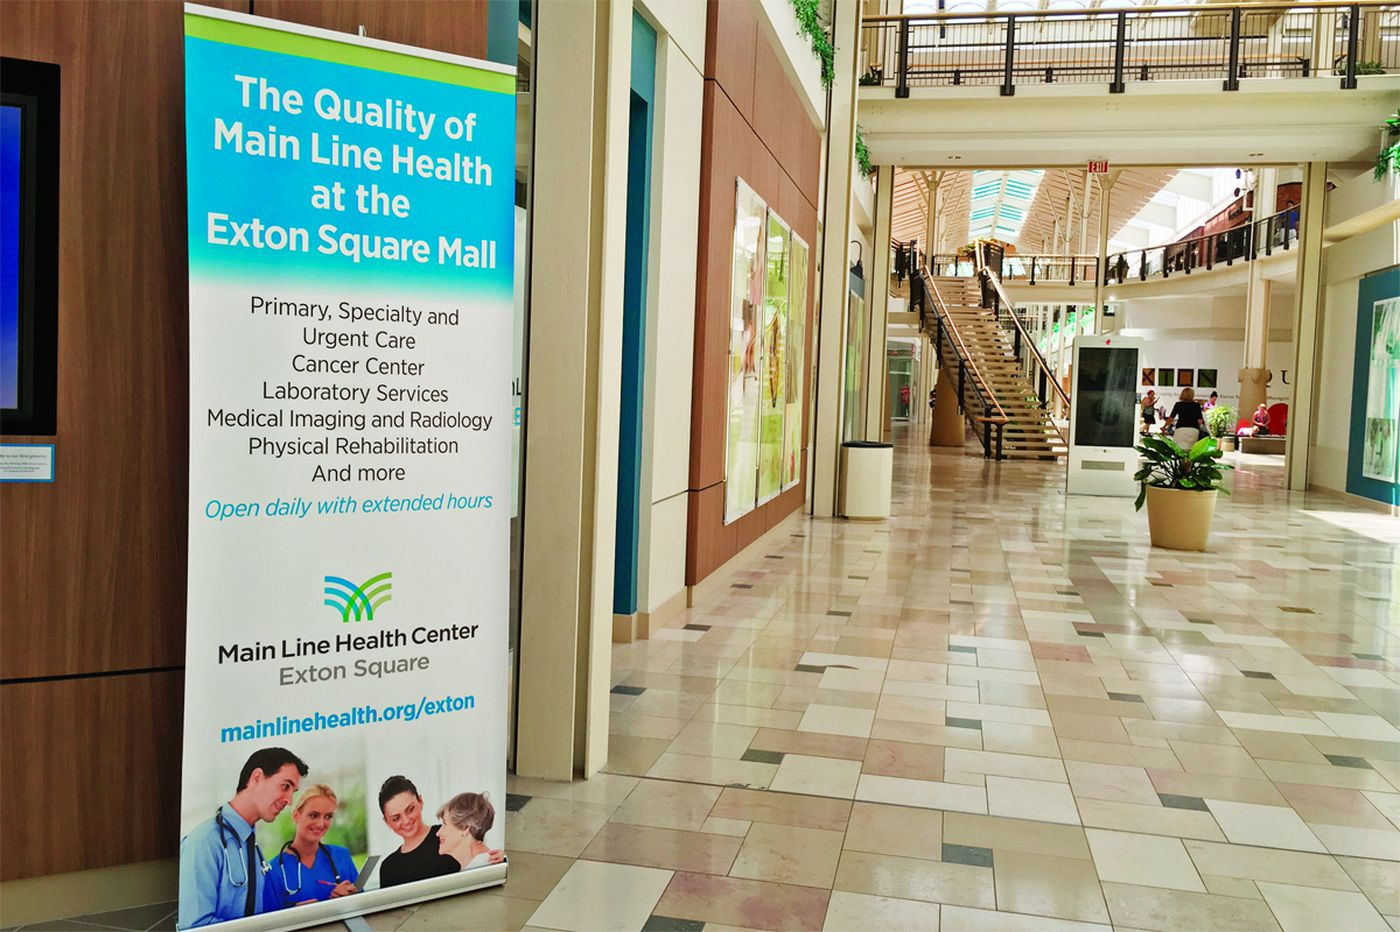 Health centers quickly filling up space in Philly area malls